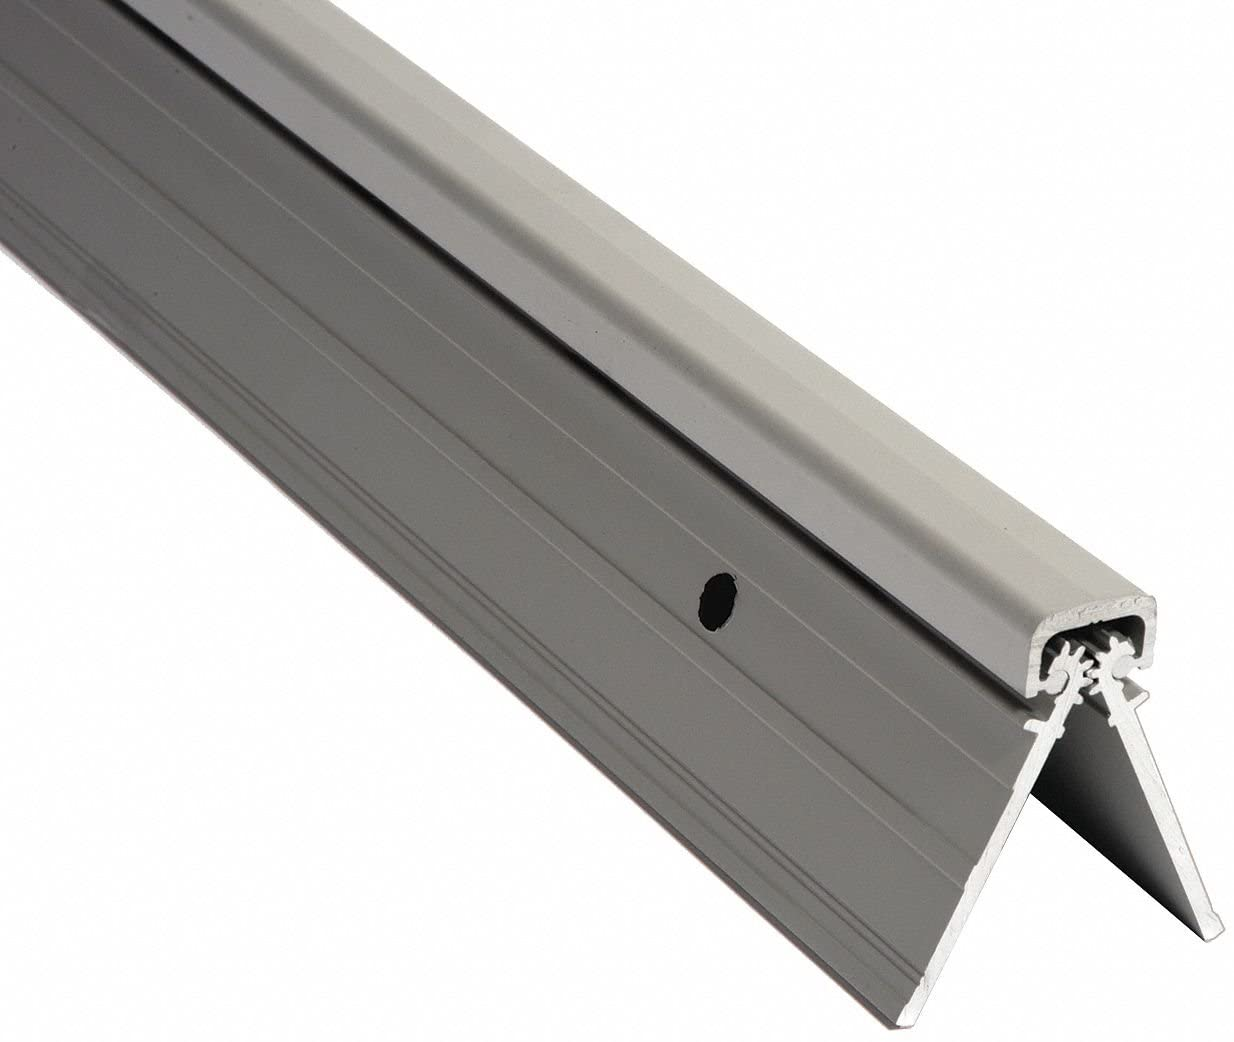 180 Continuous Hinge With Holes, Unfinished, Door Leaf: 83